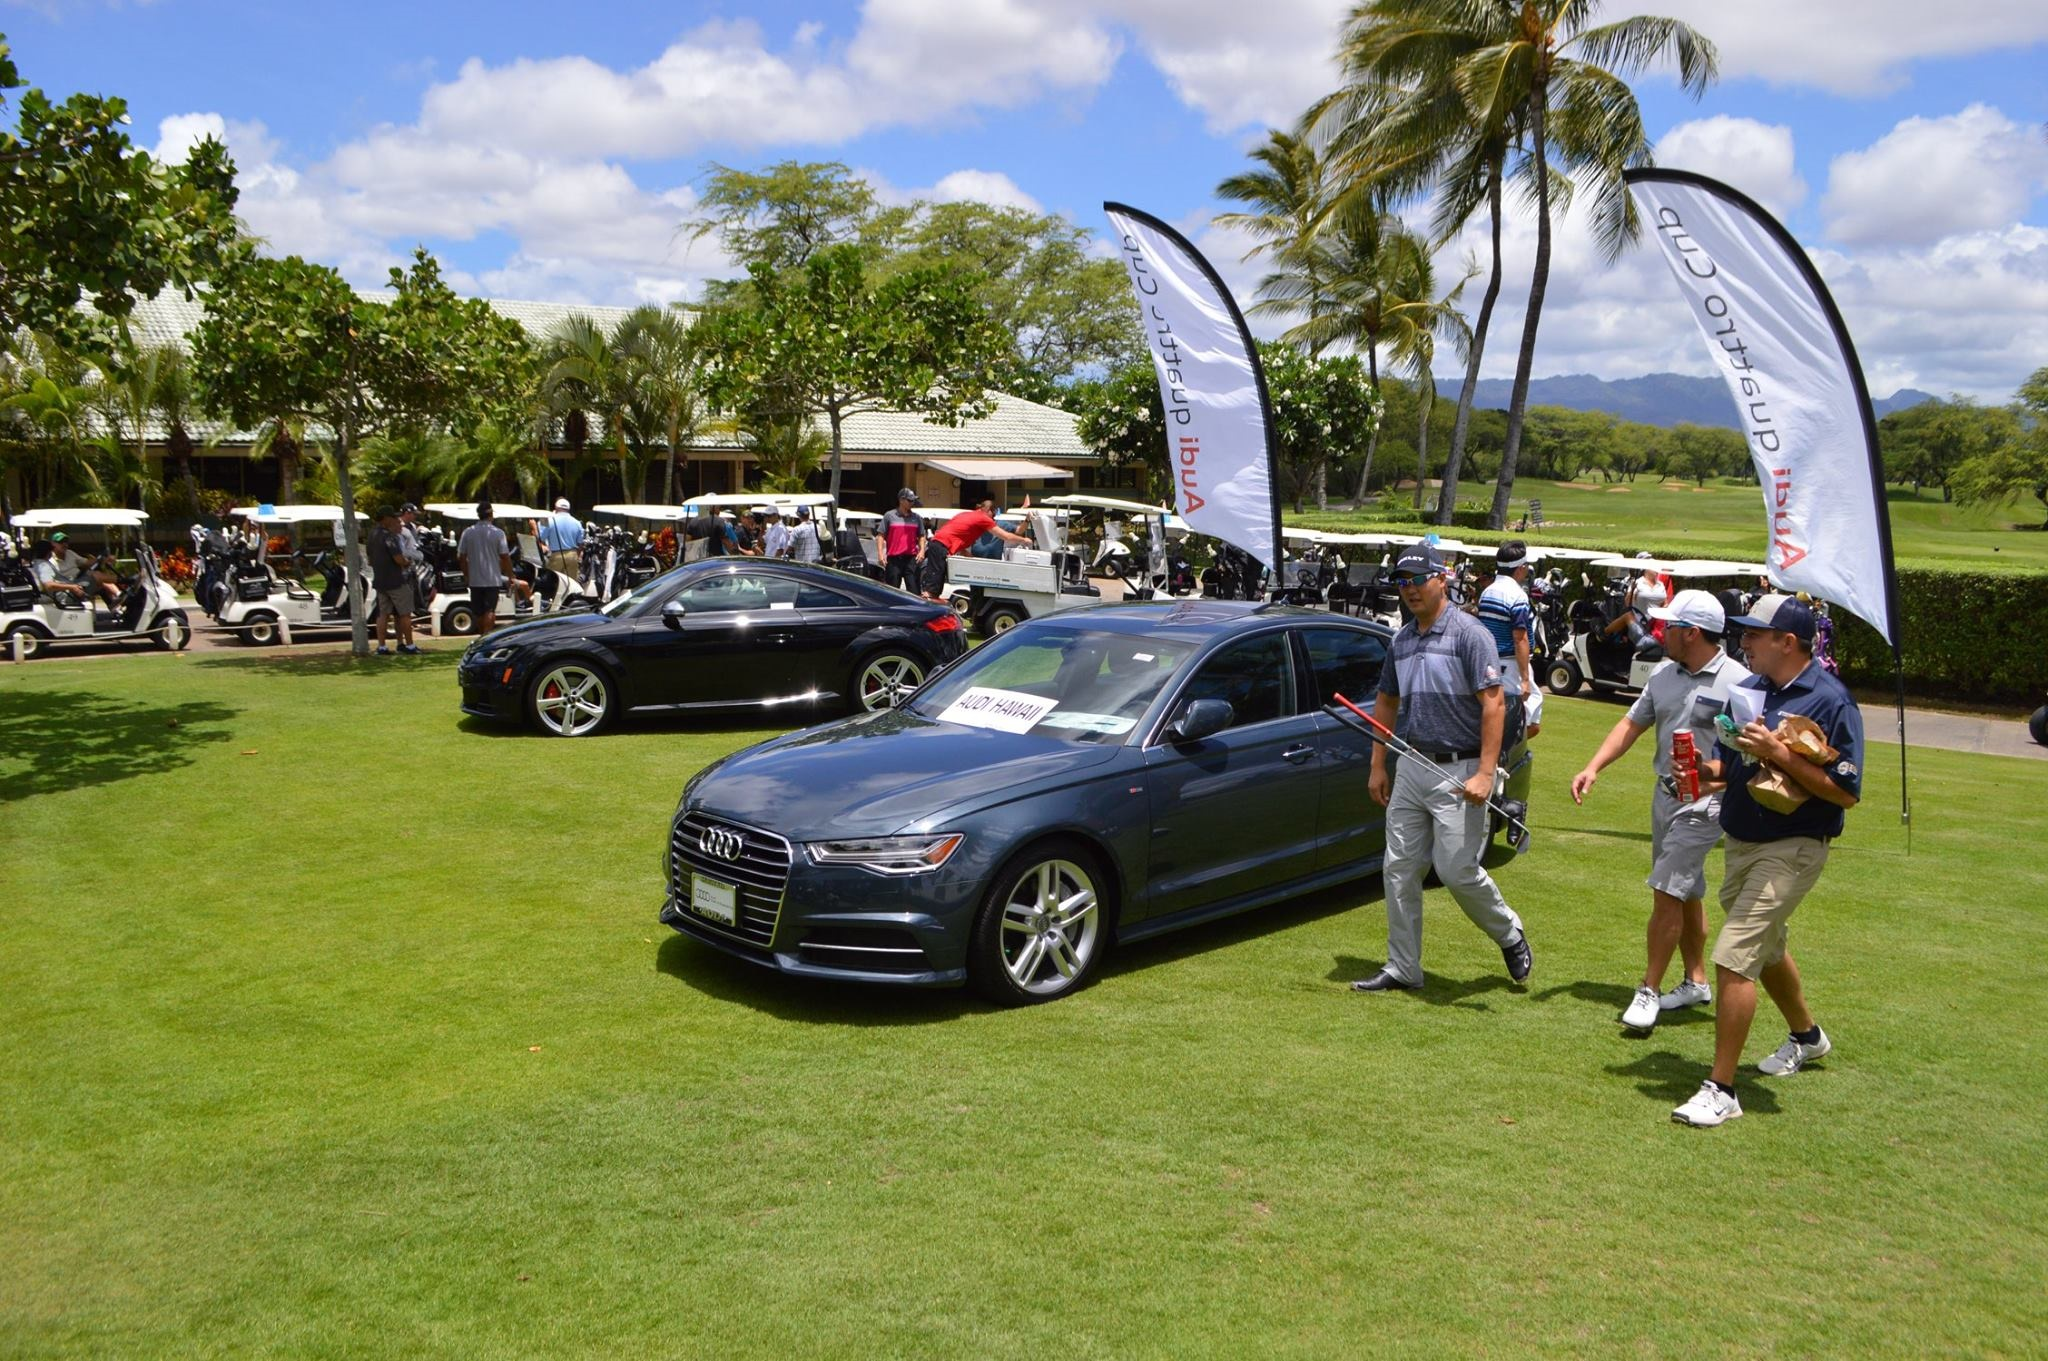 Audi Honolulu Audi Hawaii Hosts Th Annual Audi Quattro Cup - Audi hawaii